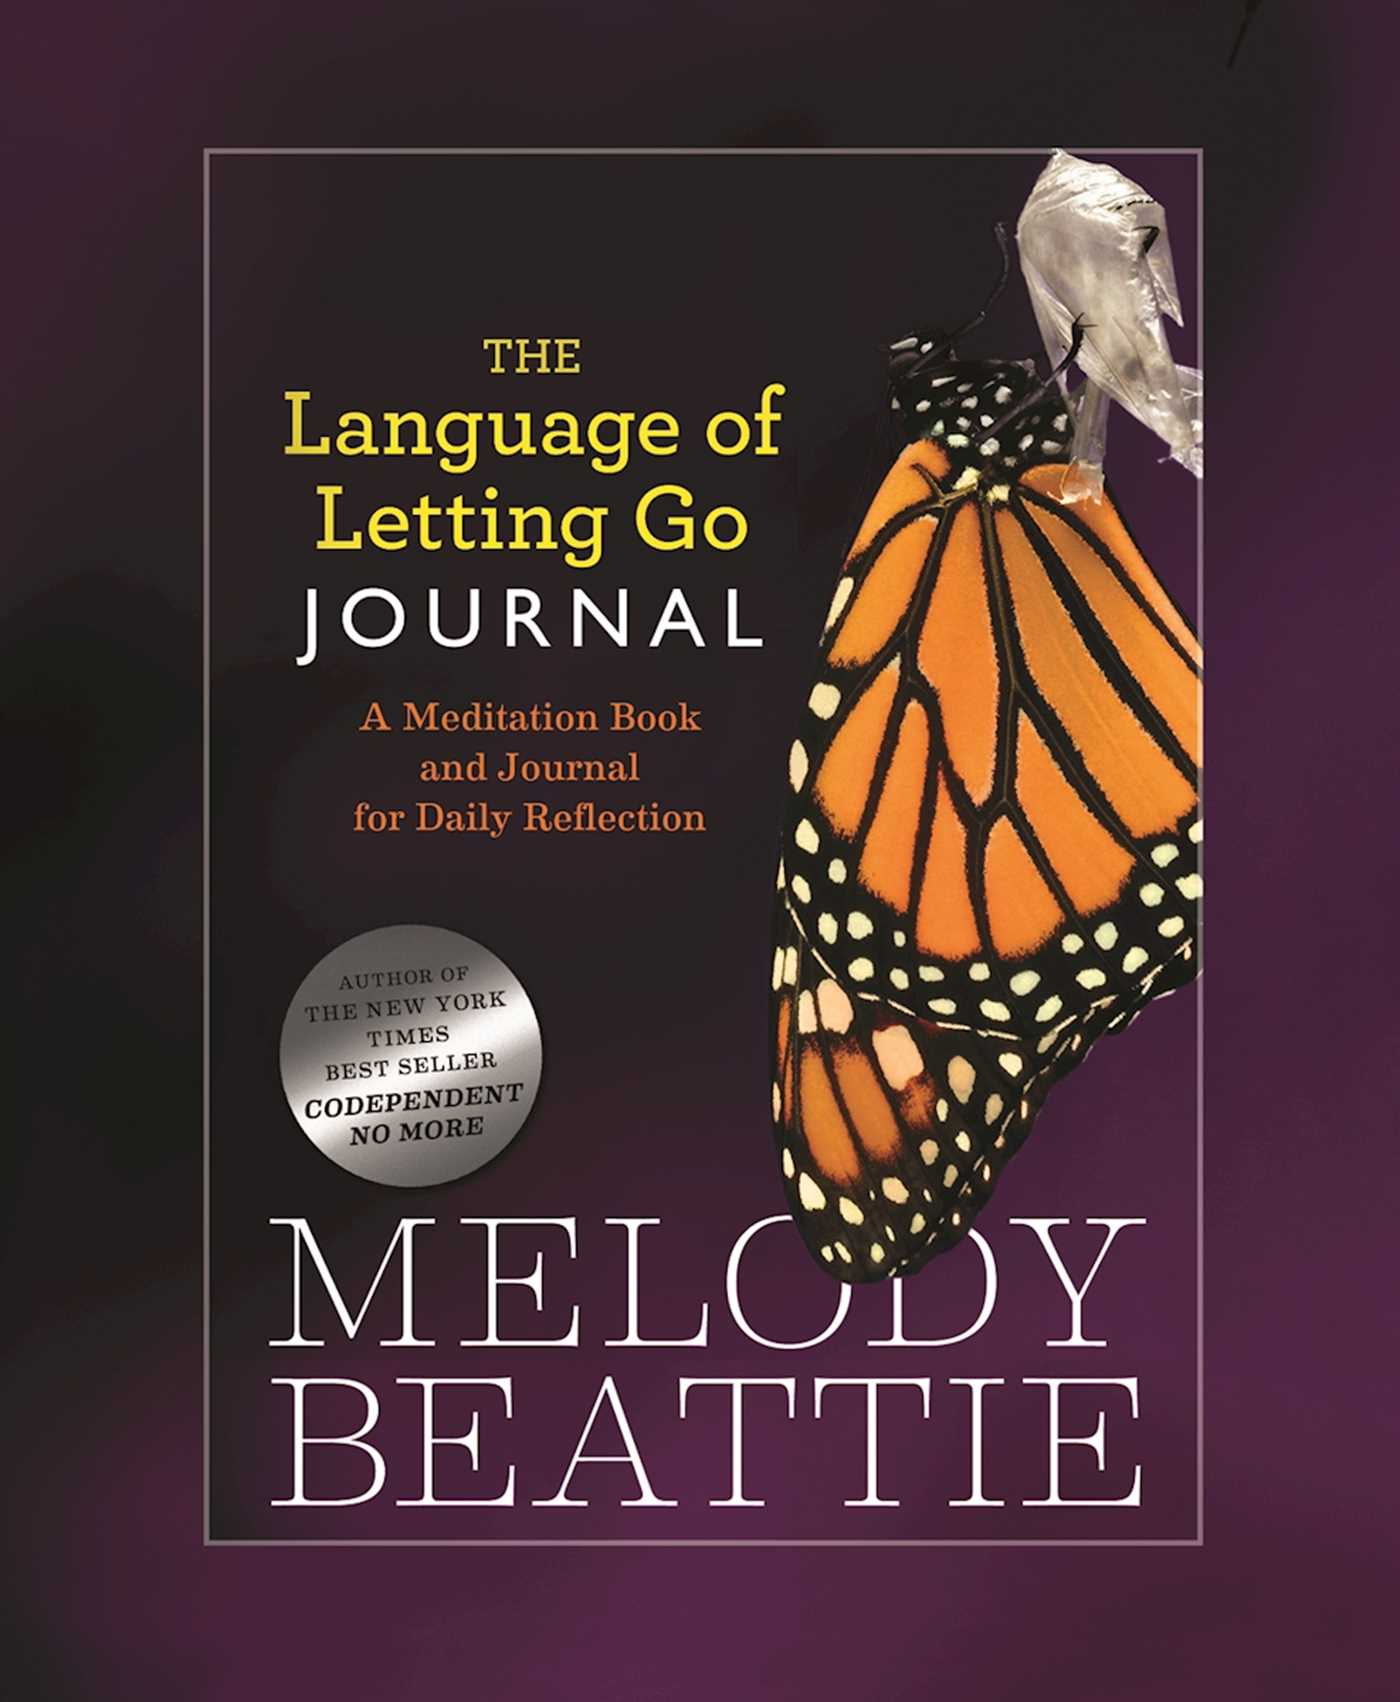 The language of letting go journal 9781568389844 hr